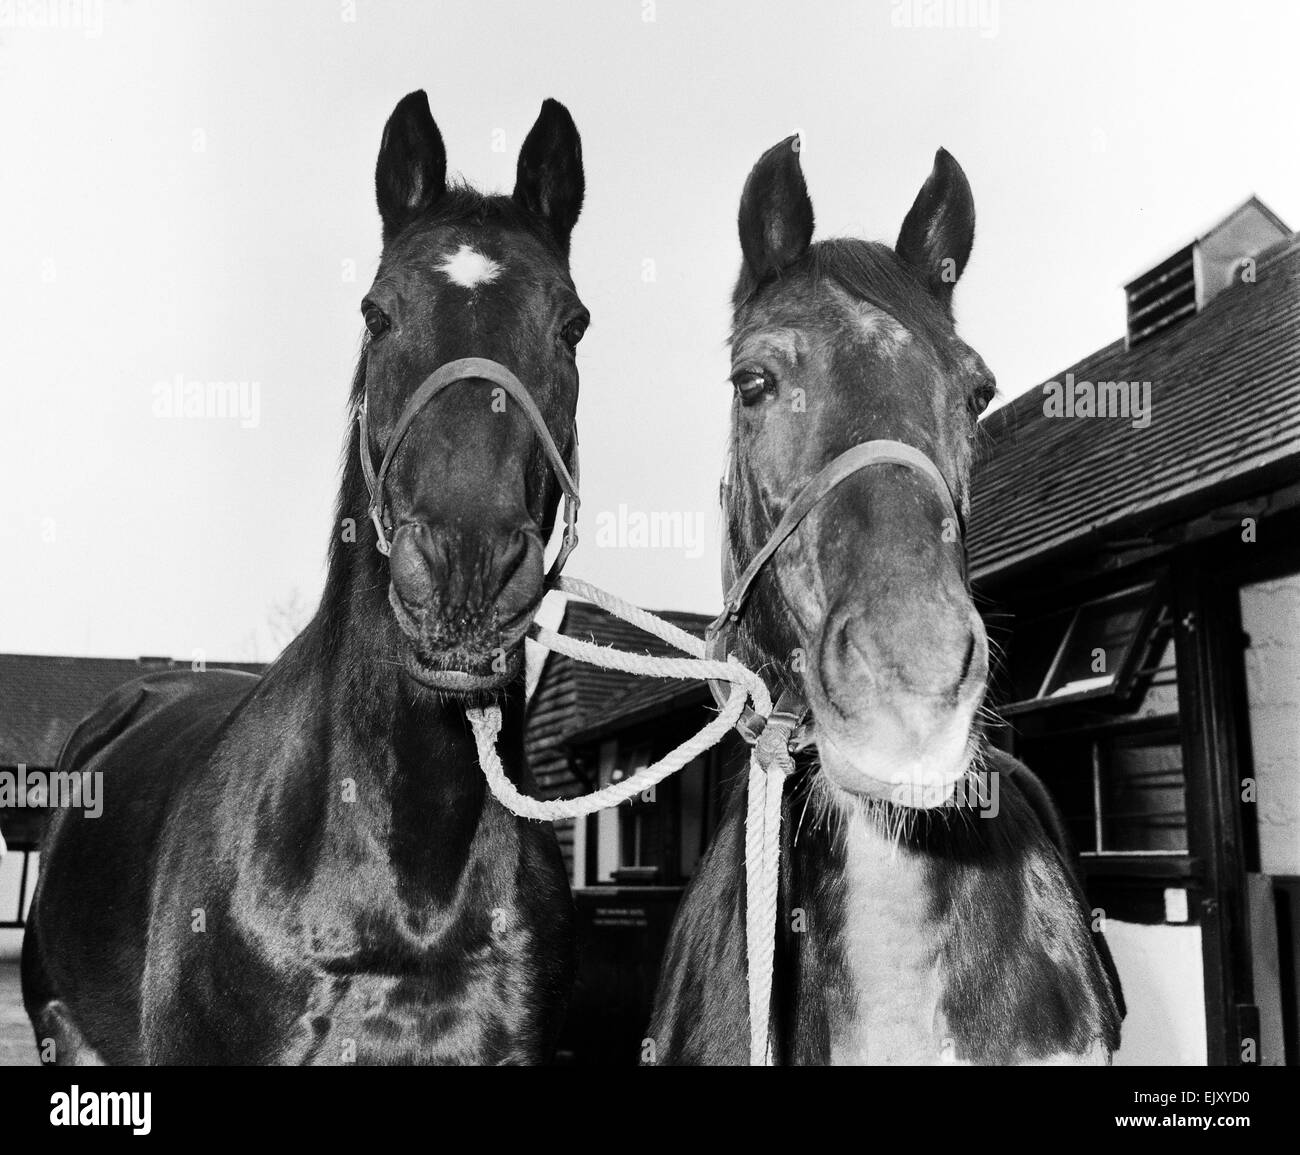 Racehorse Golden Miller at his stables with another horse. Circa 1952. - Stock Image